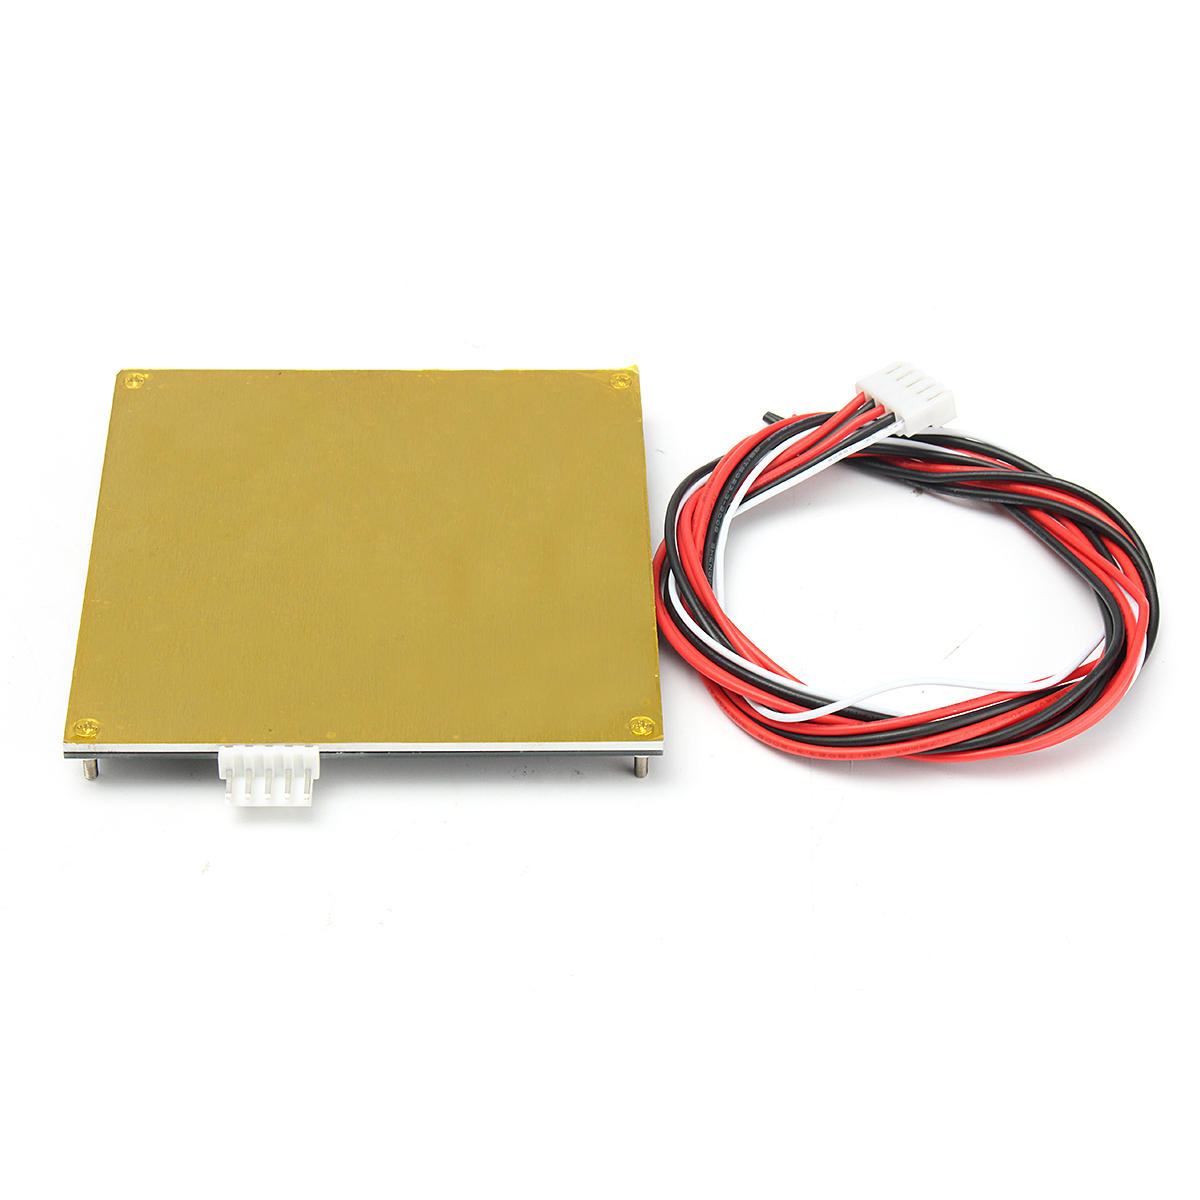 Reprap Heatbed Heat Bed Pcb Mk2a Hot Plate For 3d Printer Prusa Mendel Sales Of Quality Assurance Active Components